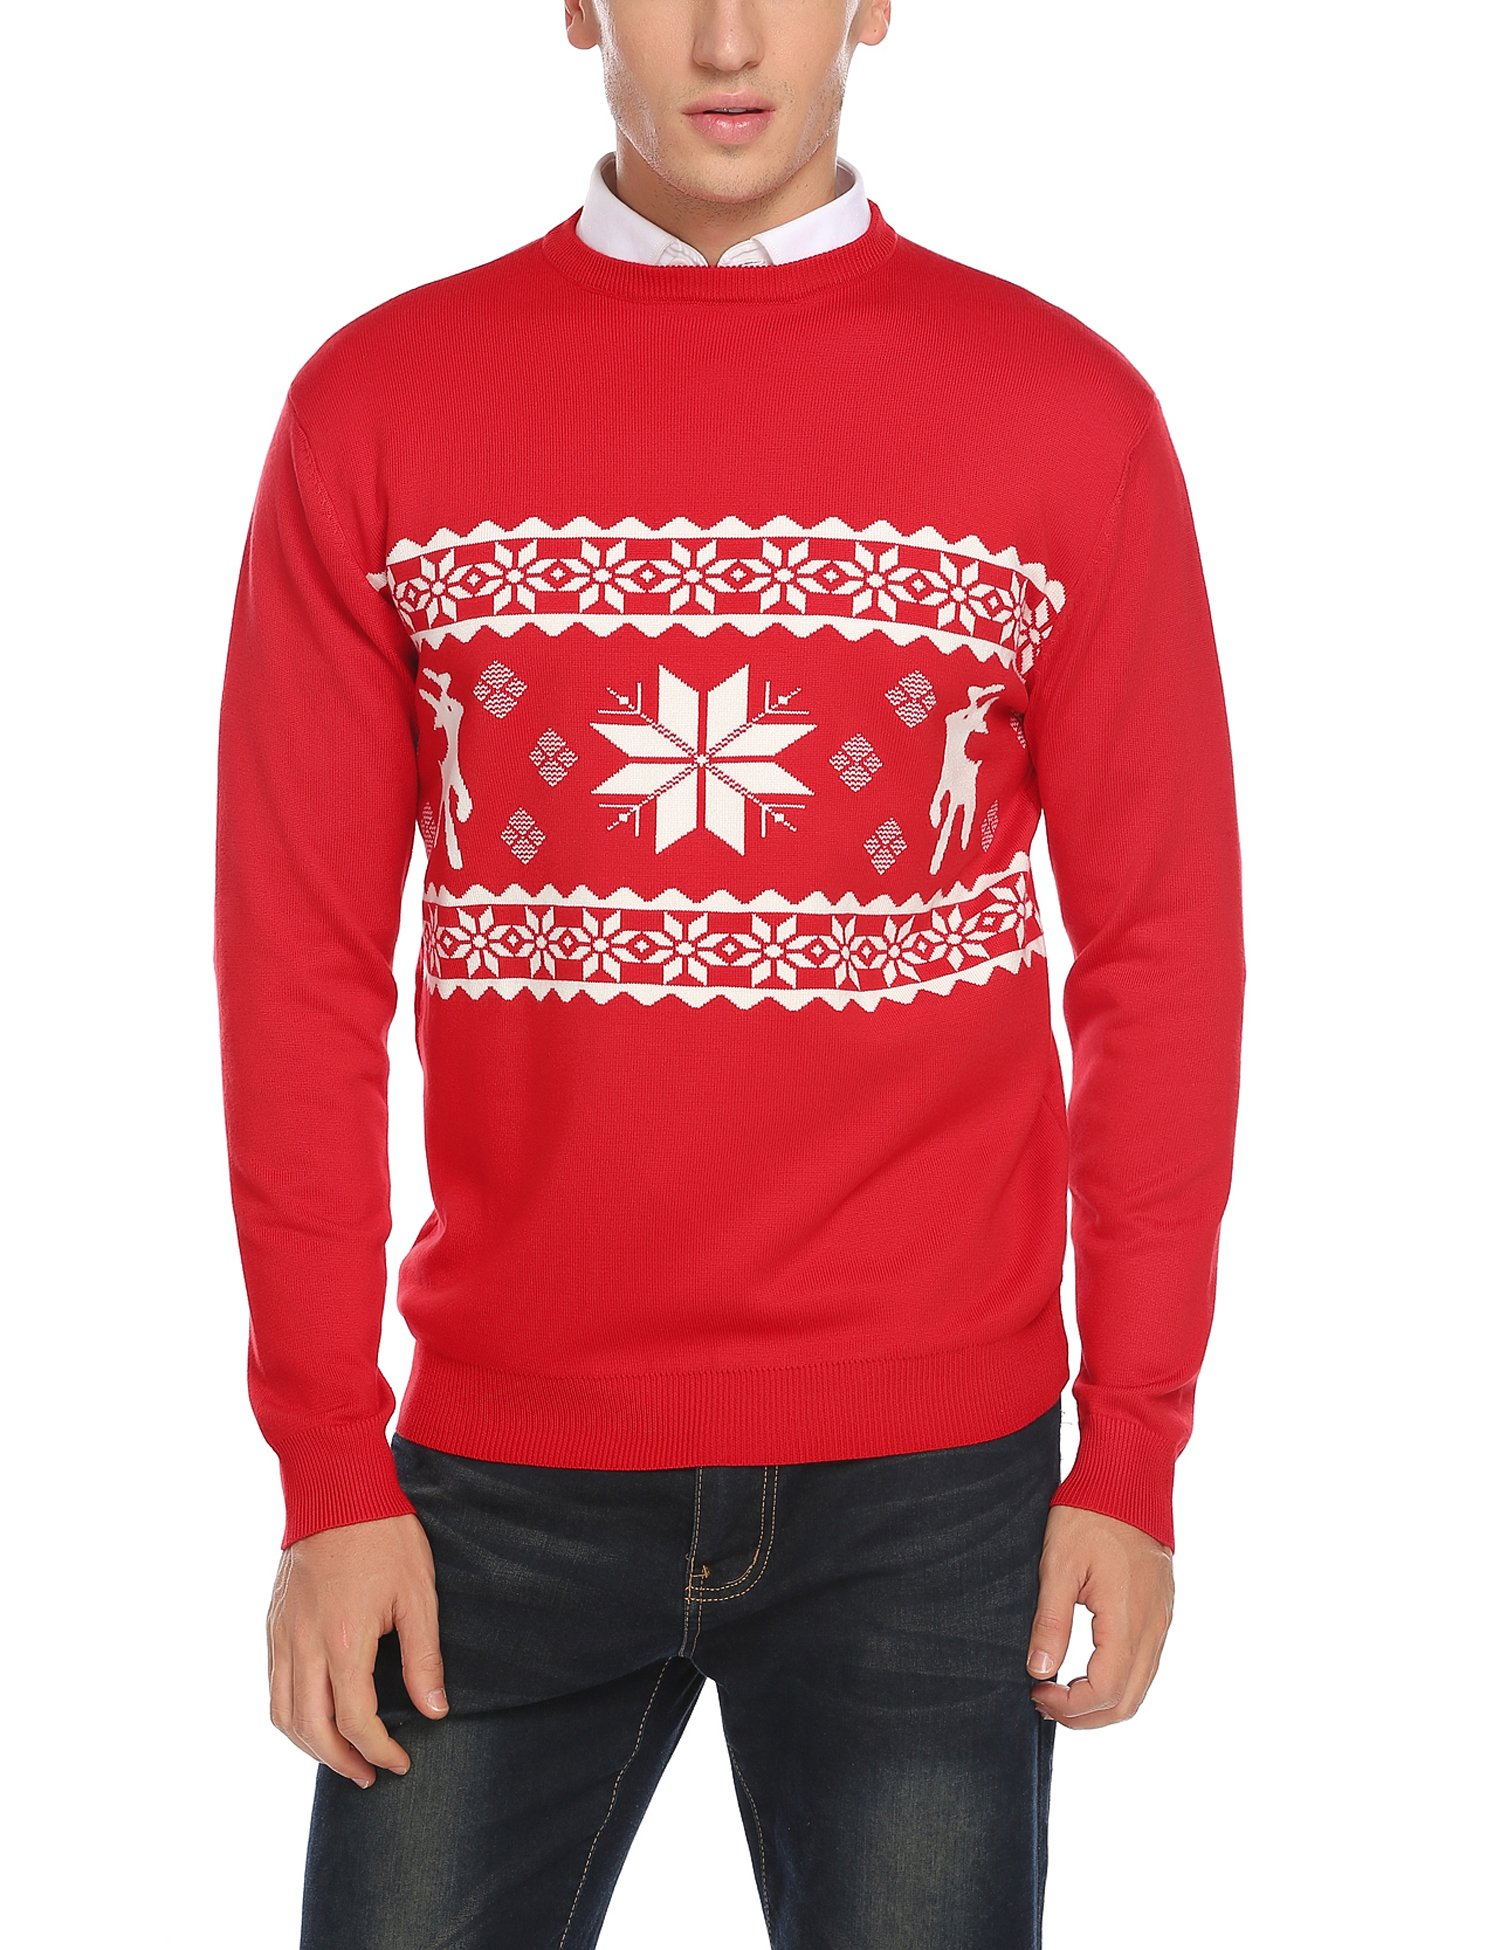 COOFANDY Men's Ugly Sweater Crewneck Holiday Festive Pullover